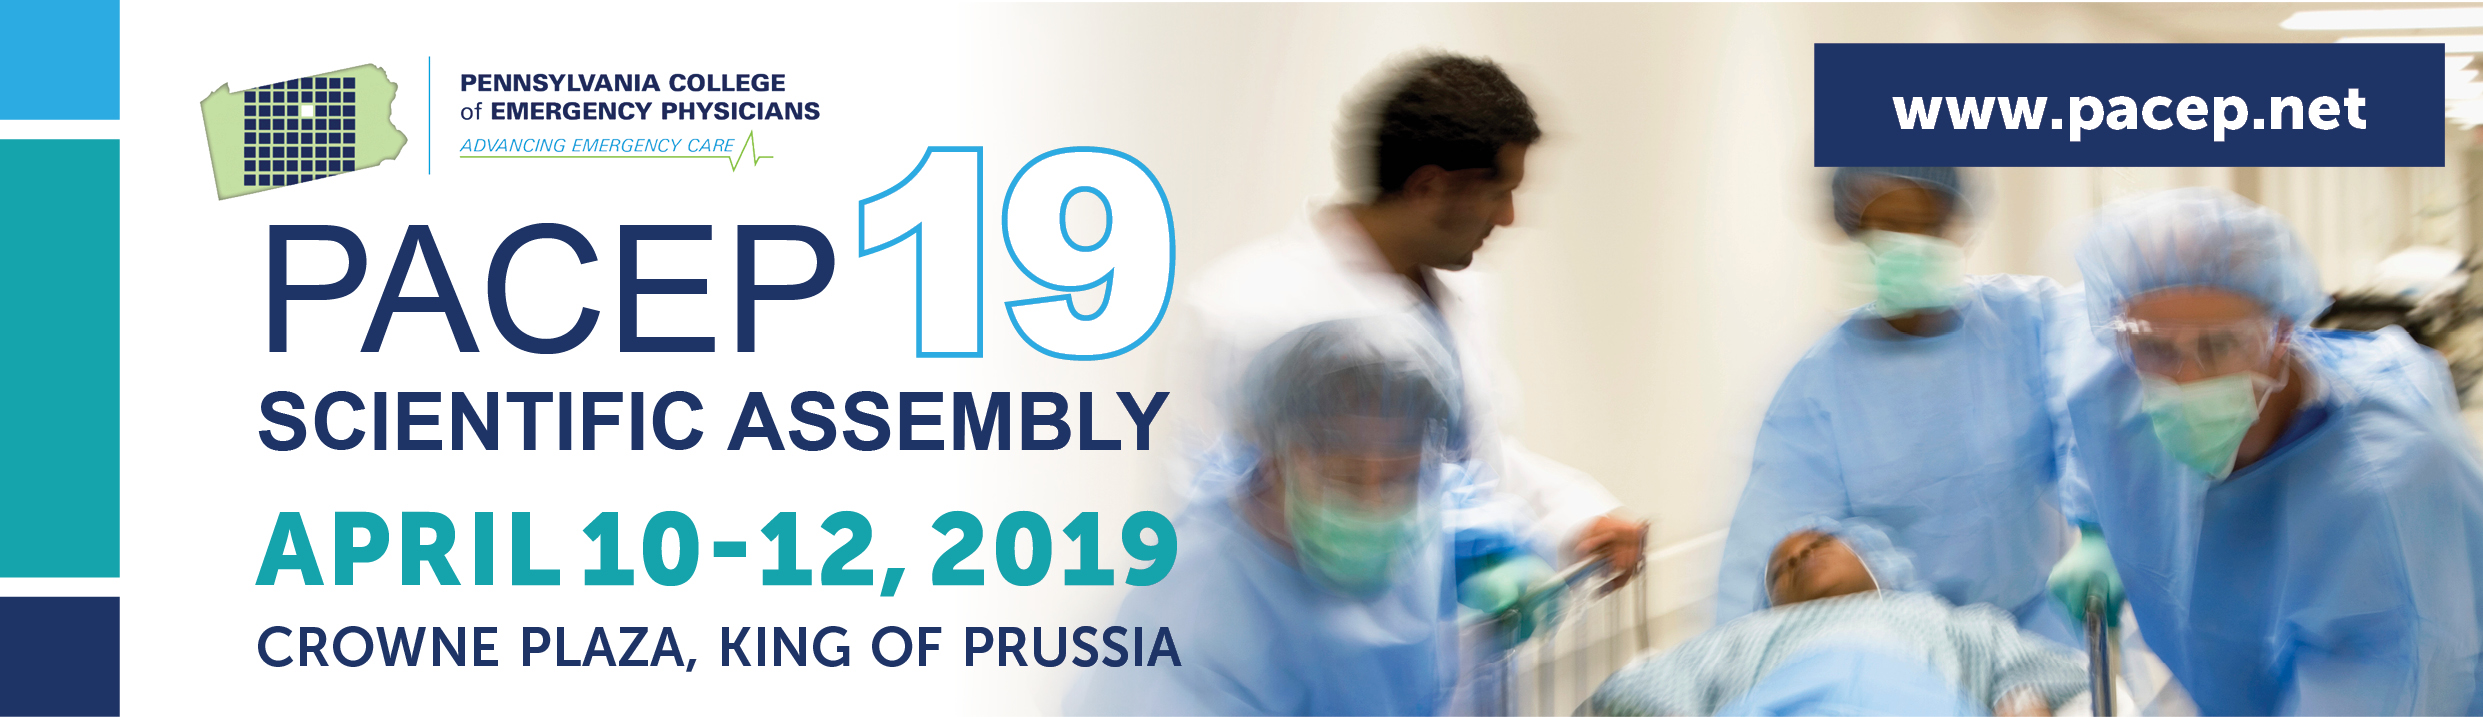 PACEP19 Scientific Assembly